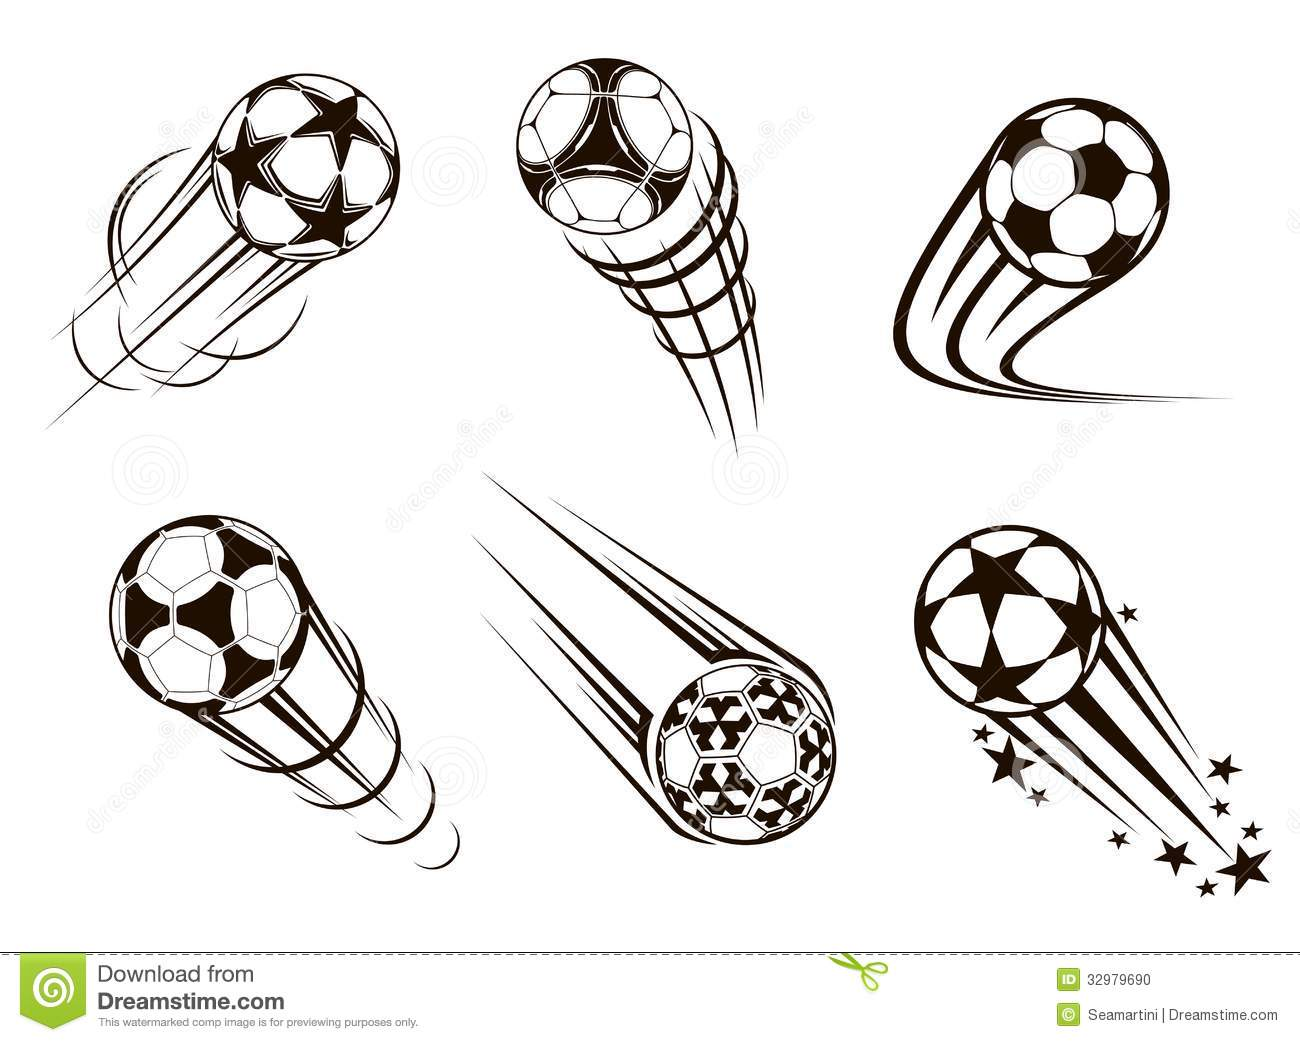 Soccer and football emblems for sport and championship design.